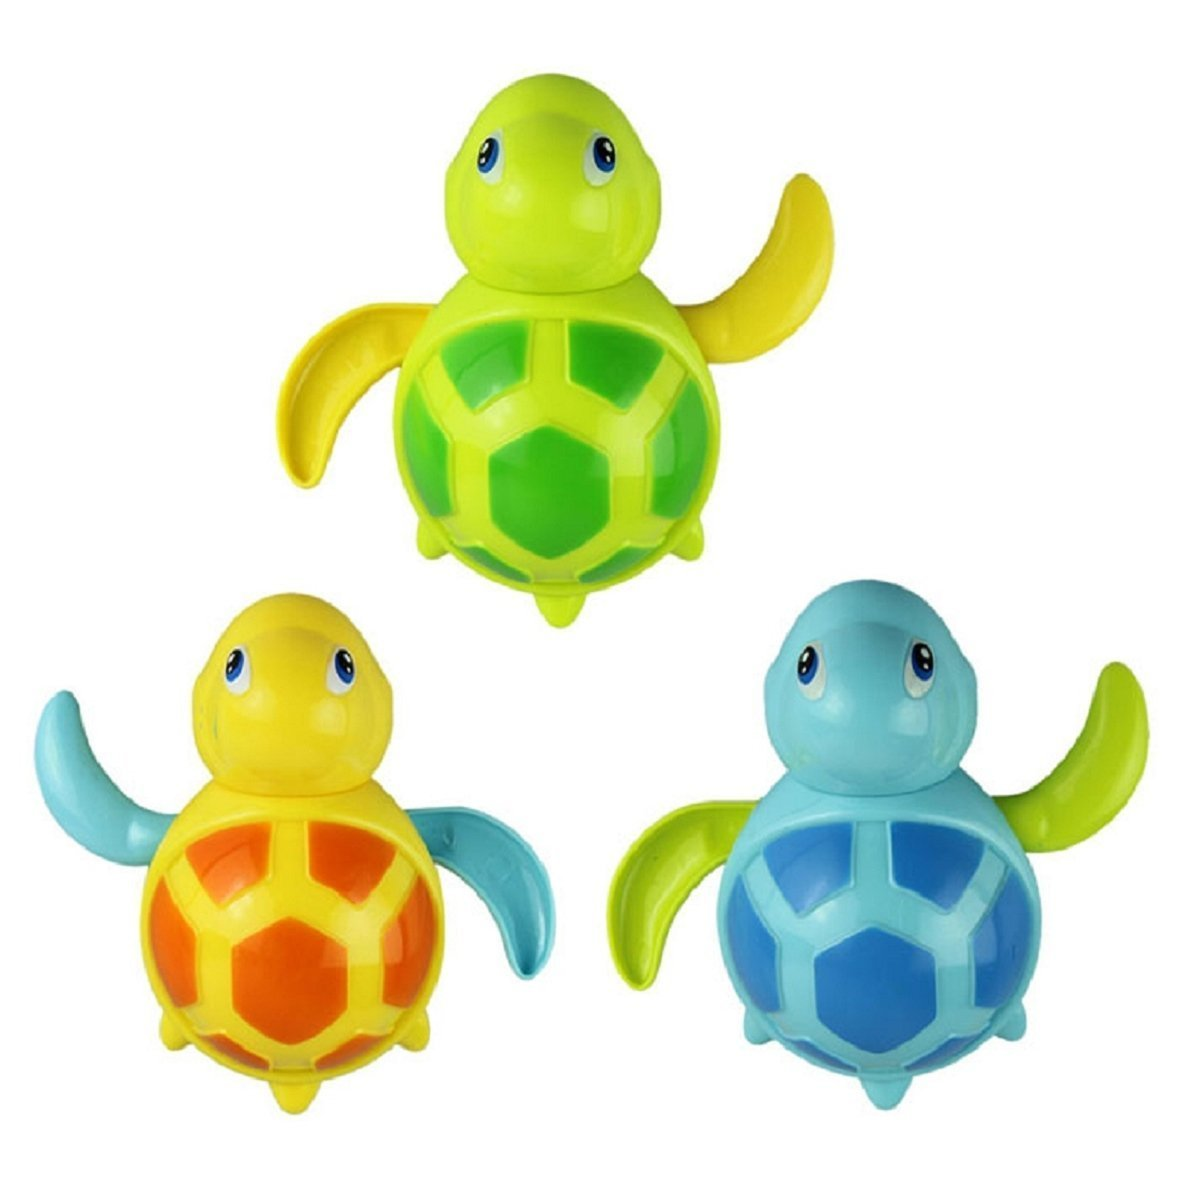 RICISUNG 1 PC New Born Babies Swim Turtle Wound-up Chain Small Animal Bath Toy